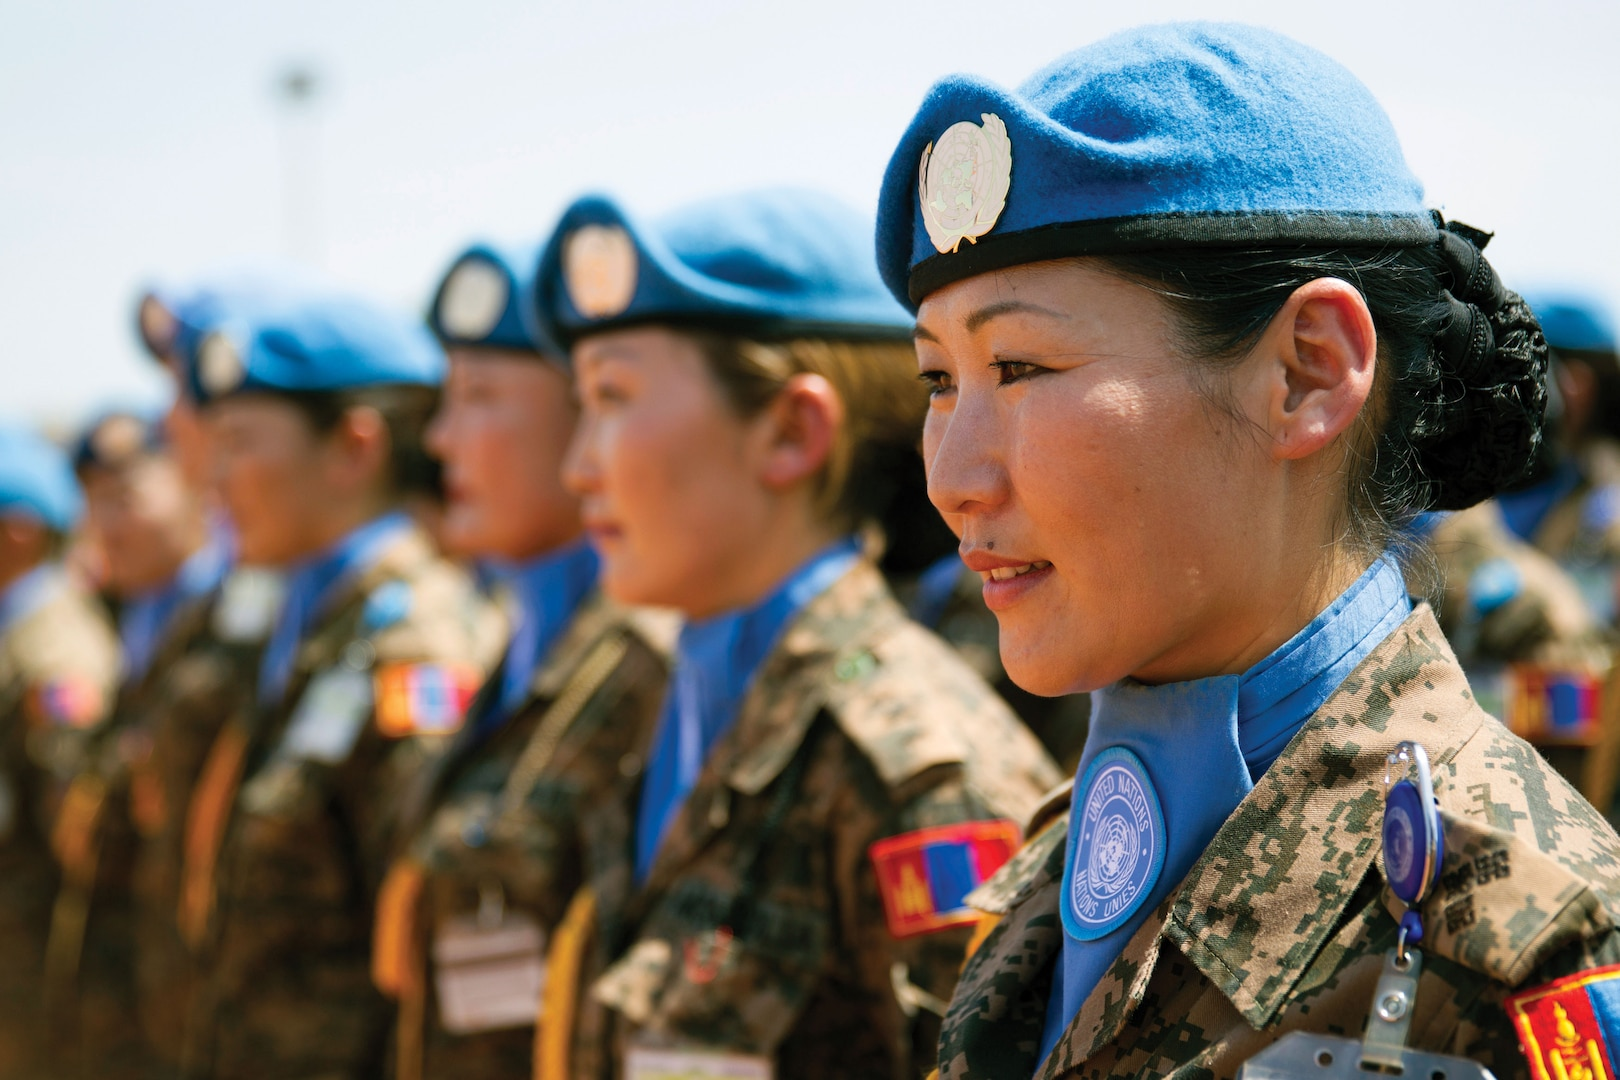 Mongolian peacekeepers stand at attention as they receive their medals for their service in the Republic of South Sudan.